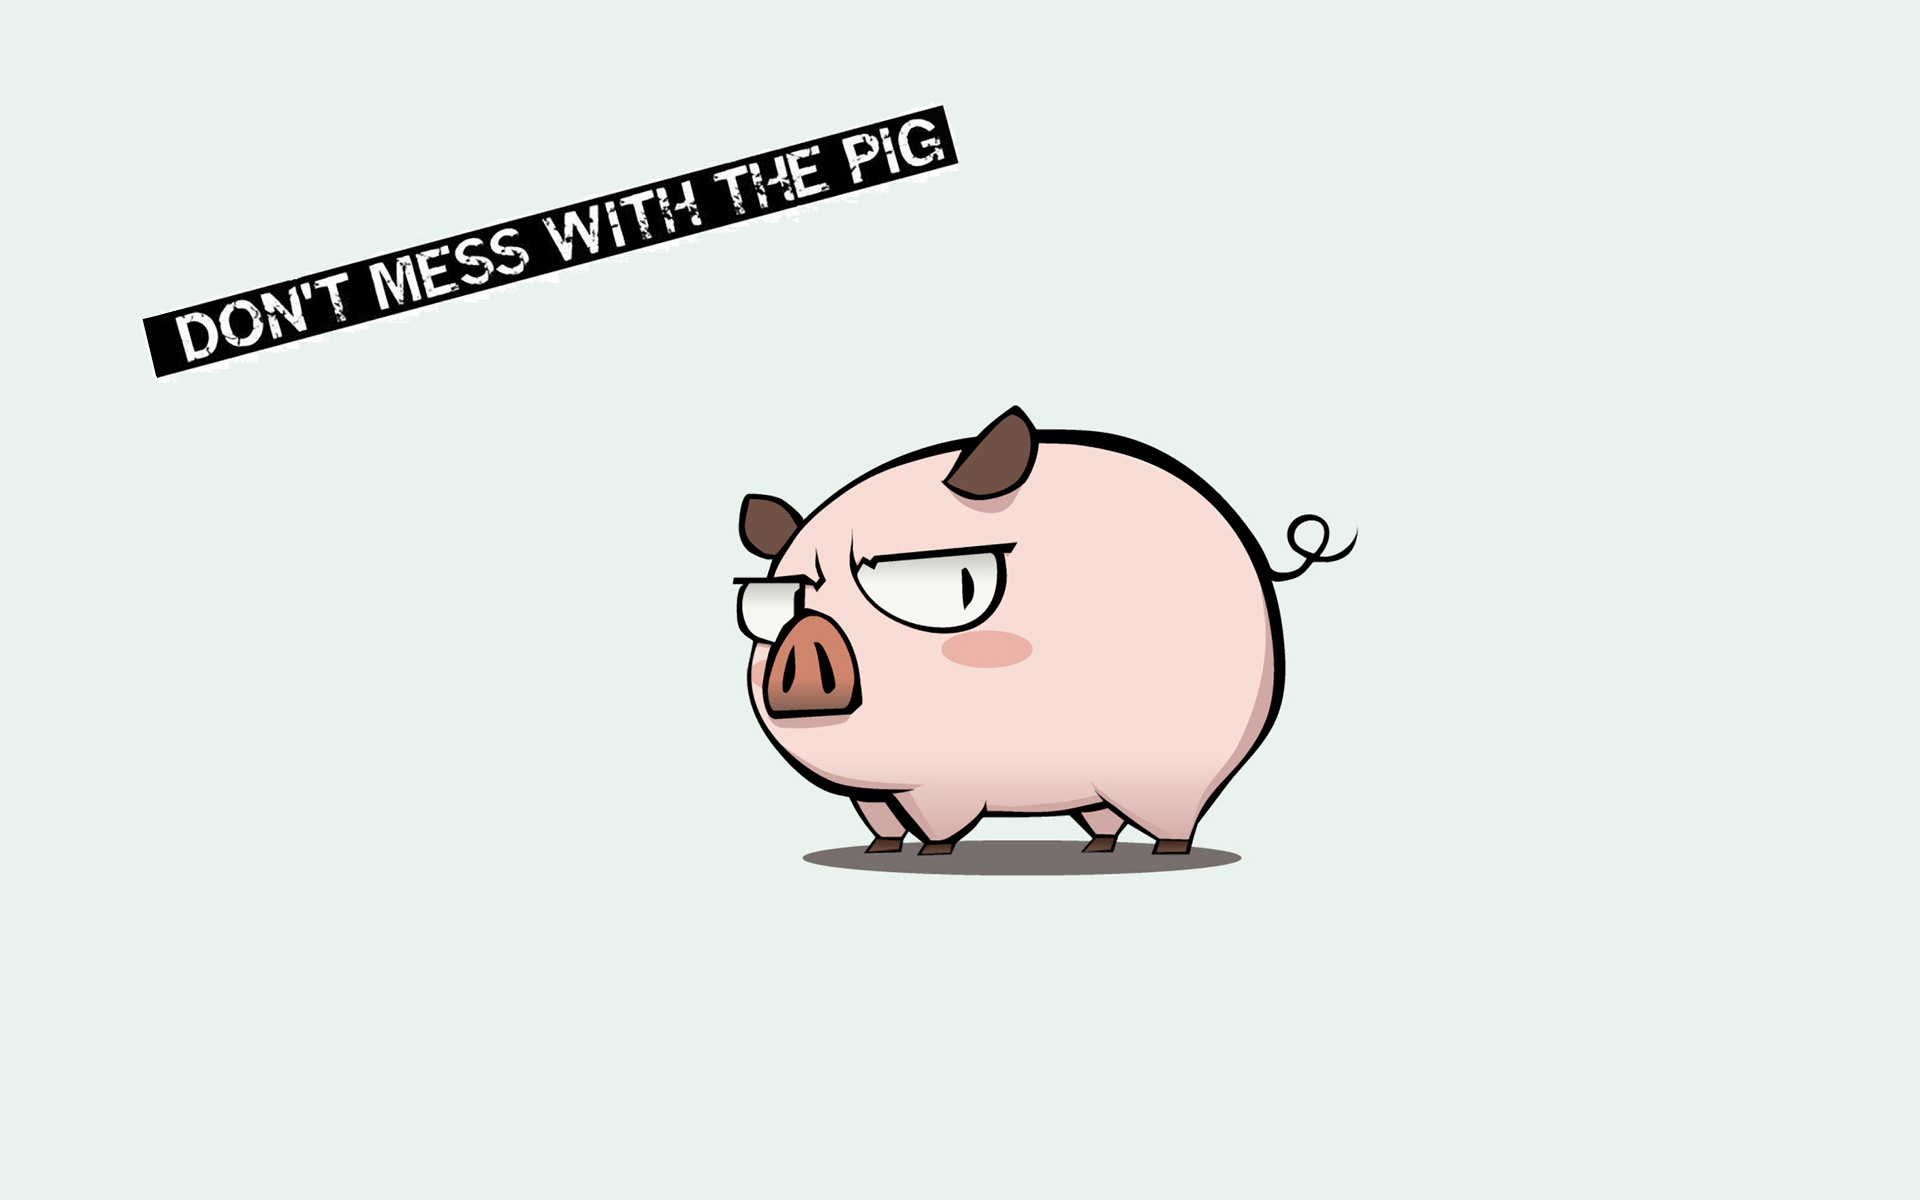 Free Pig Backgrounds (PC, Mobile, Gadgets) Compatible | 1920x1200 px